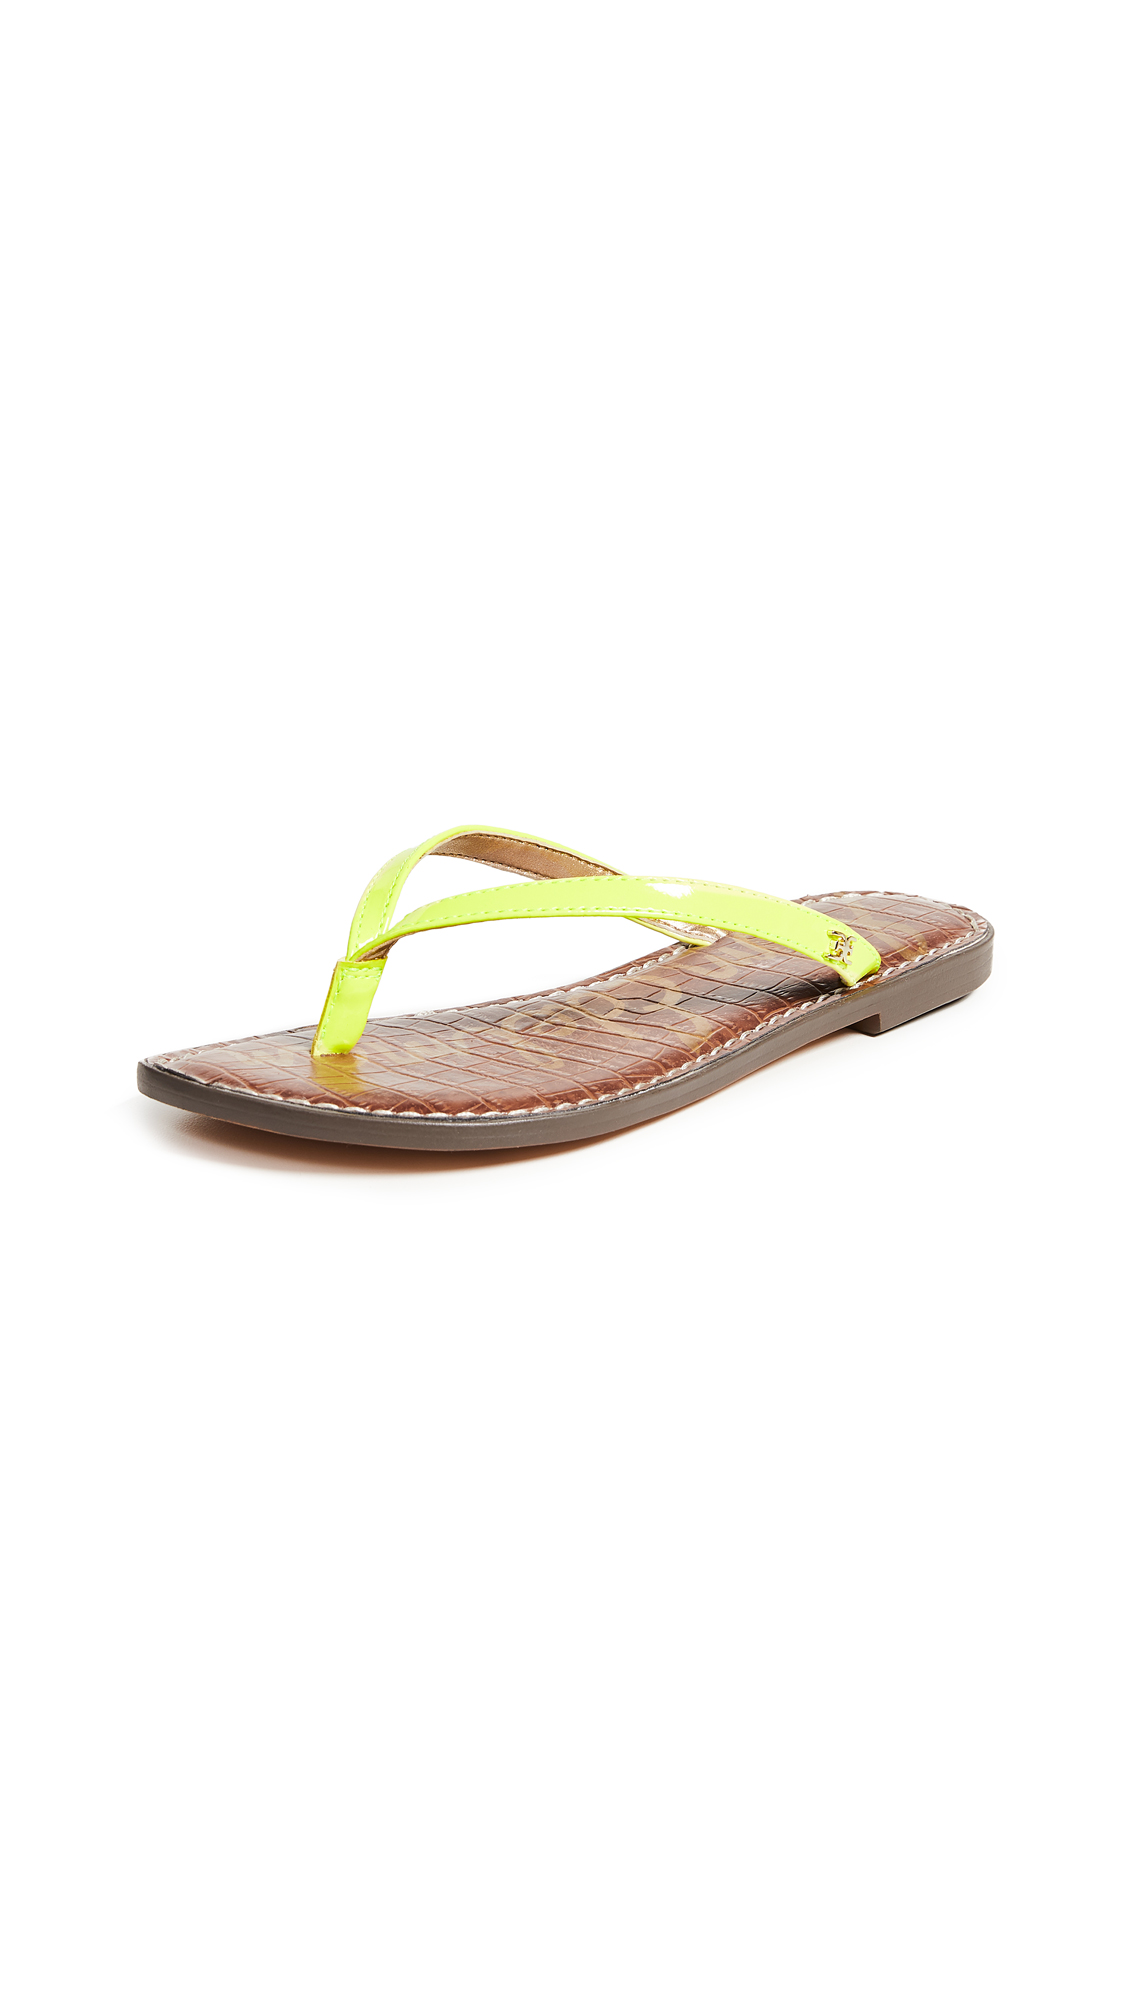 Sam Edelman Gracie Thong Sandals - Neon Yellow